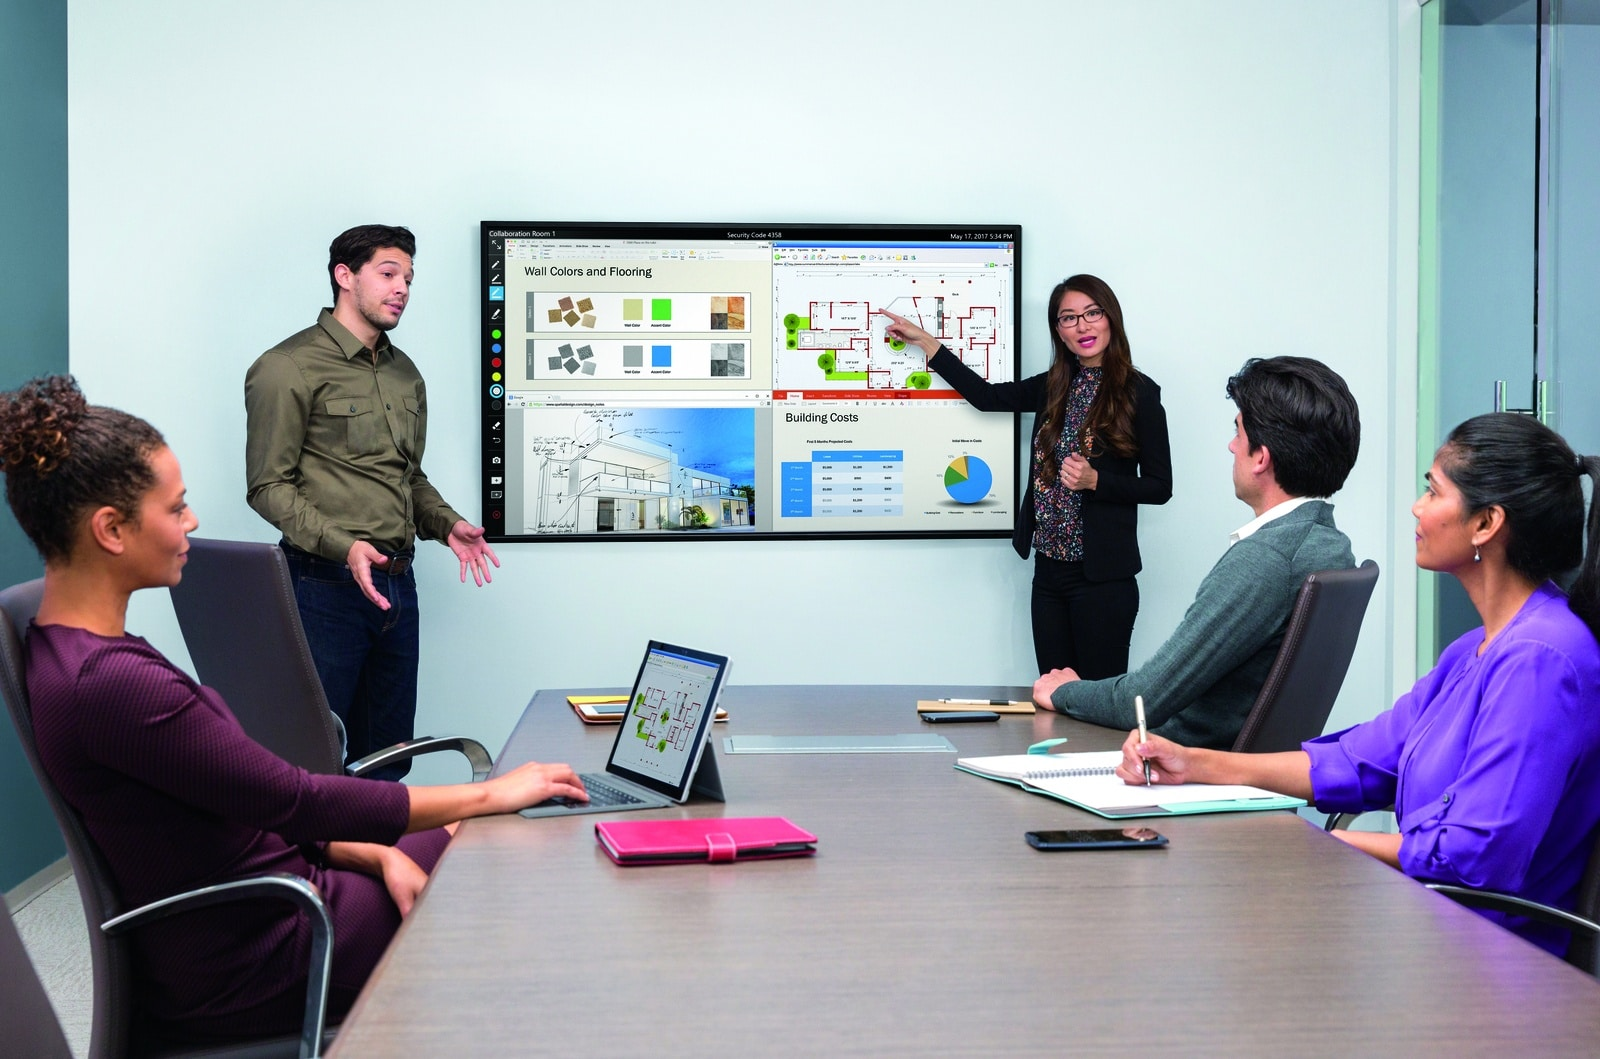 The Polycom Pano Is The Best Content Sharing & Presentation Device